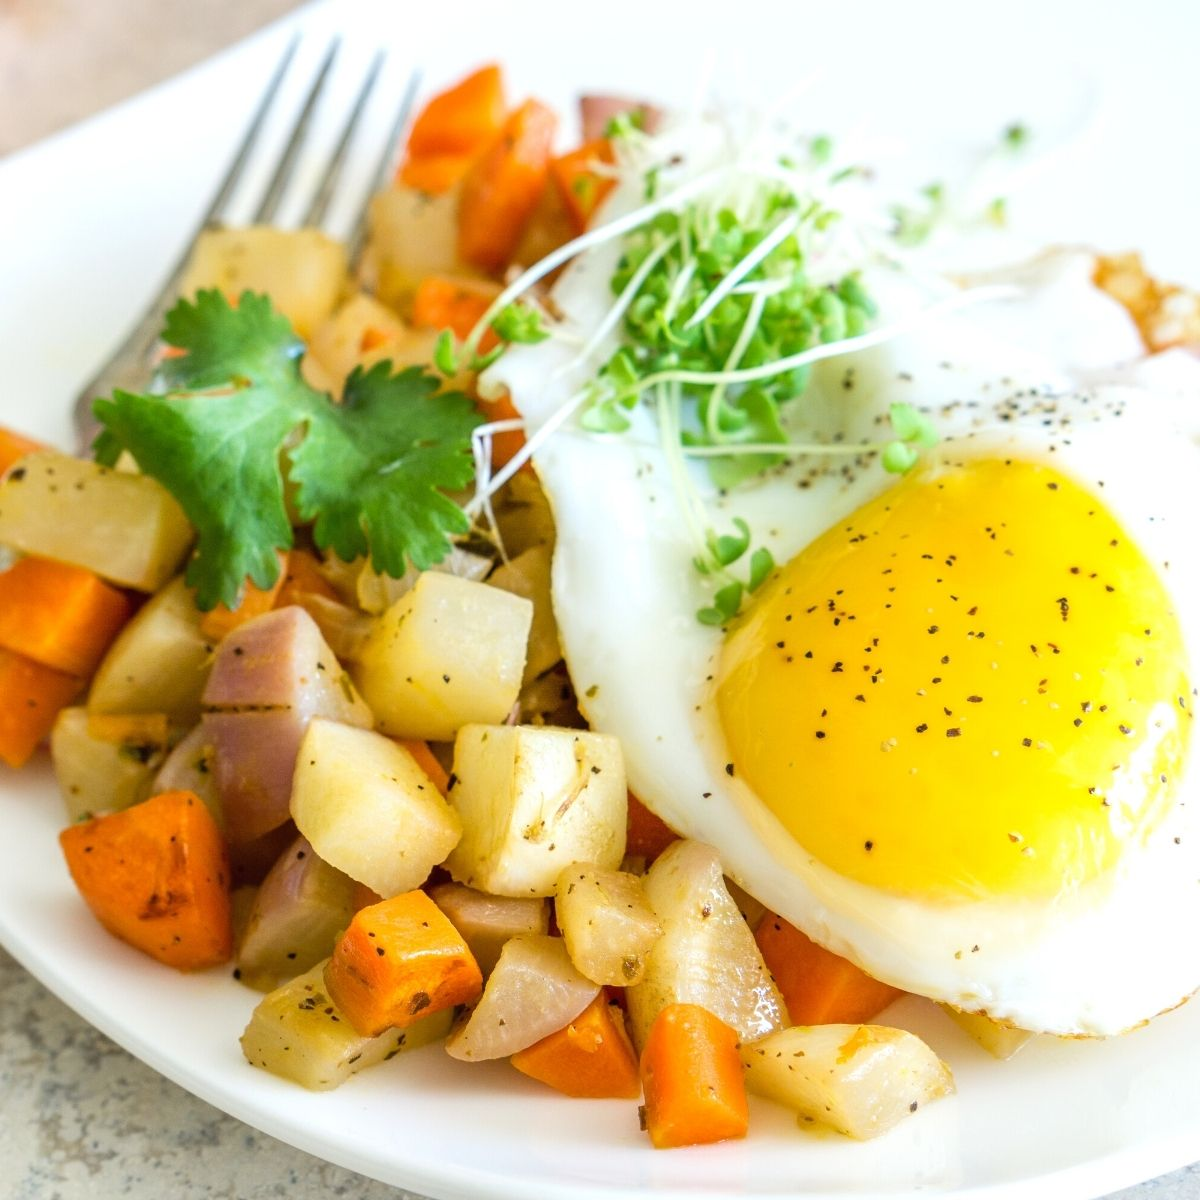 plate of vegetable hash with a fried egg on top